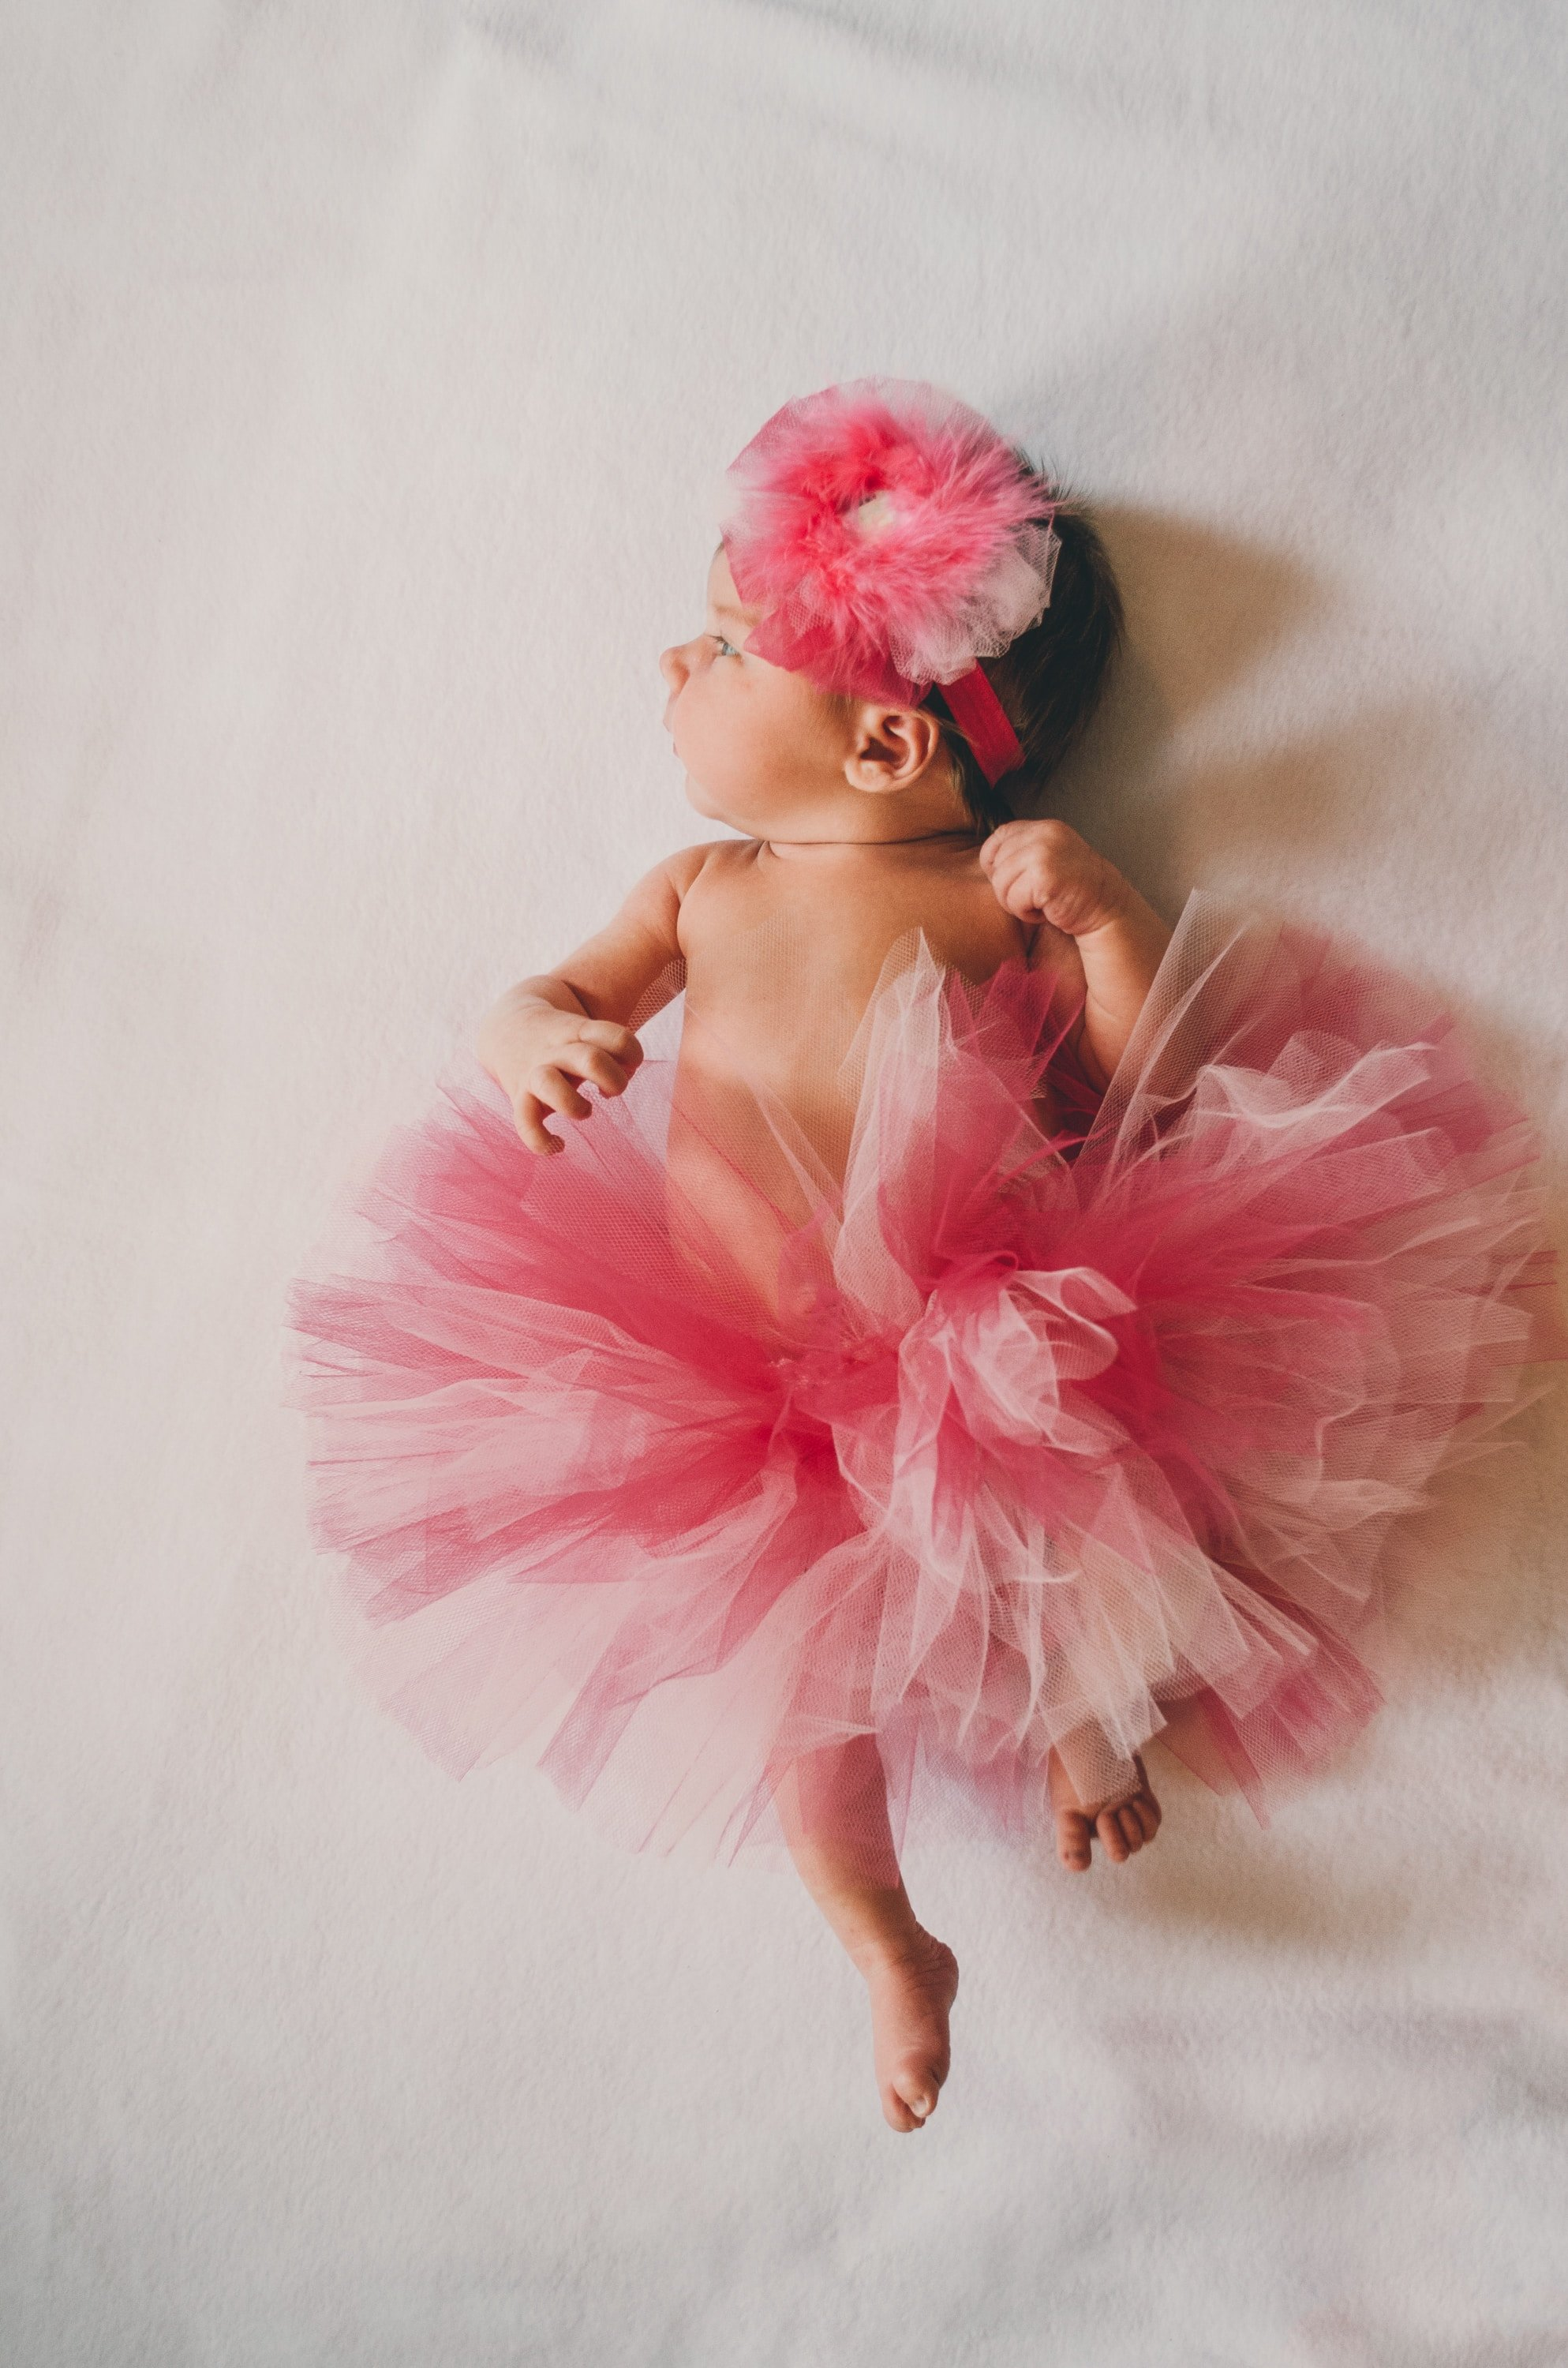 A baby in a ballerina costume | Source: Unsplash.com